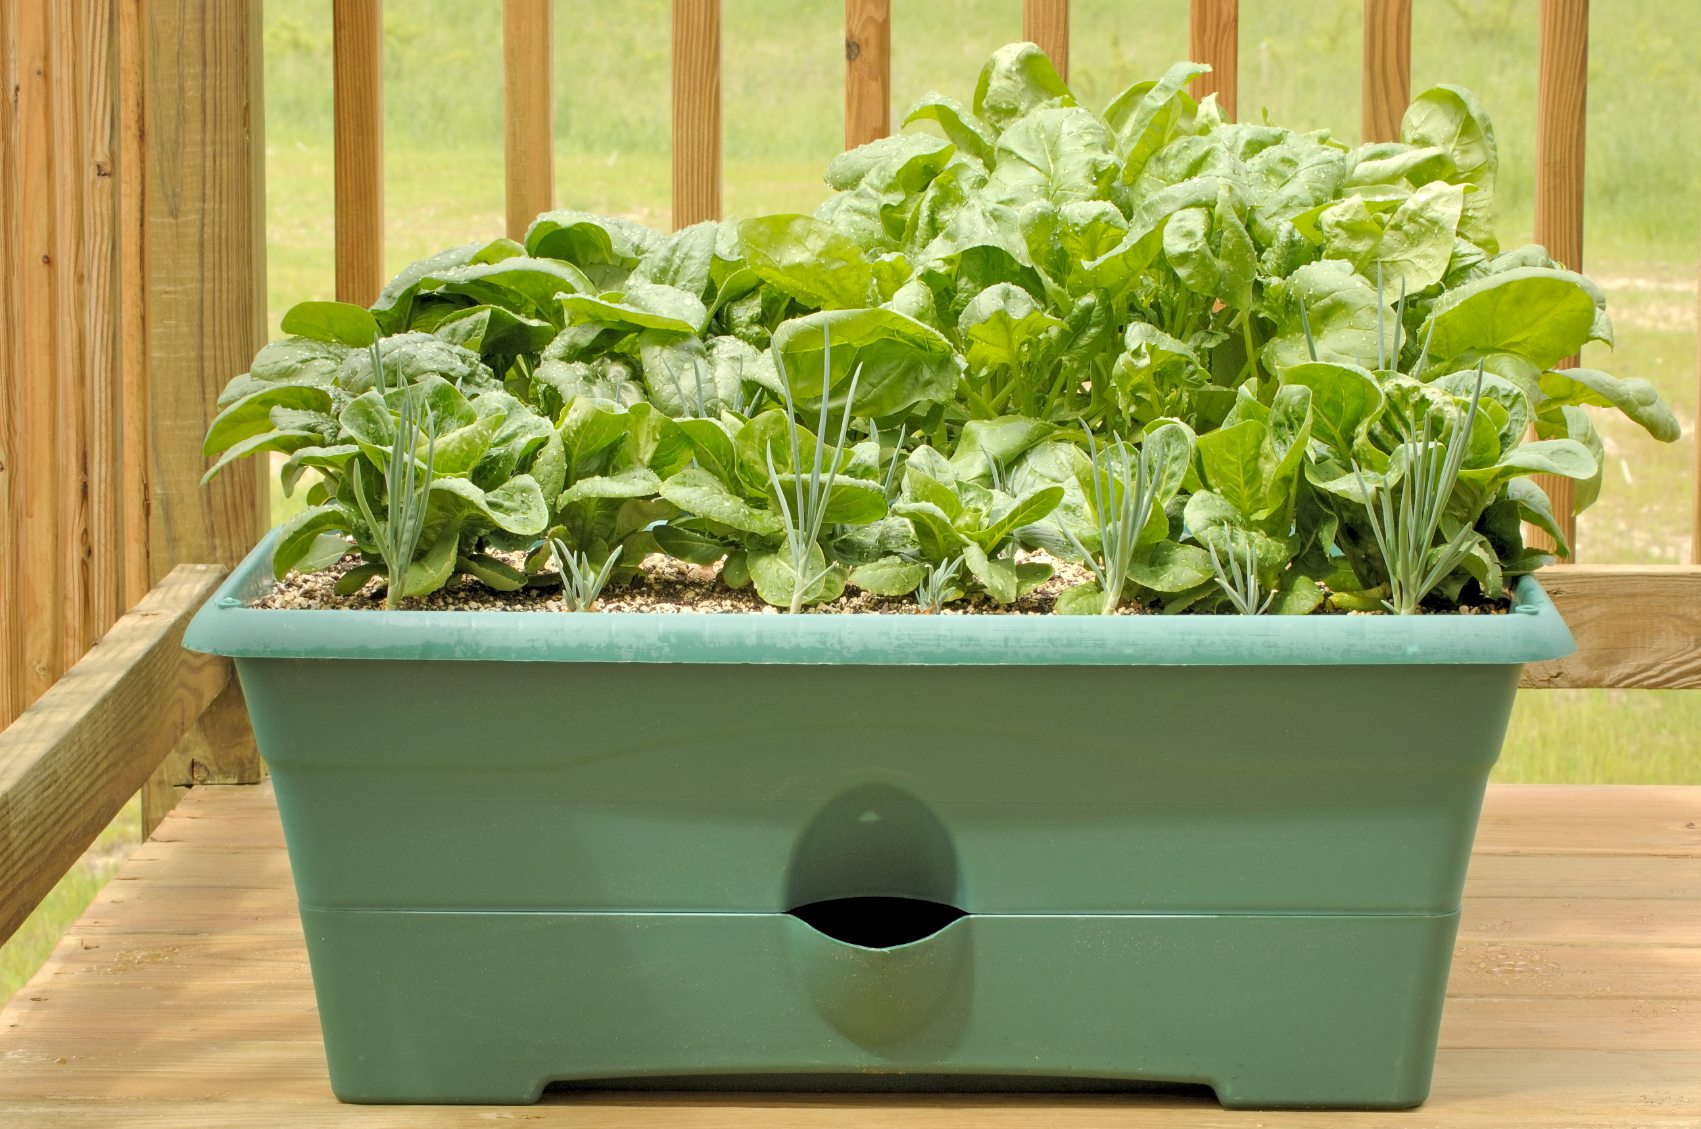 Growing Spinach In Containers